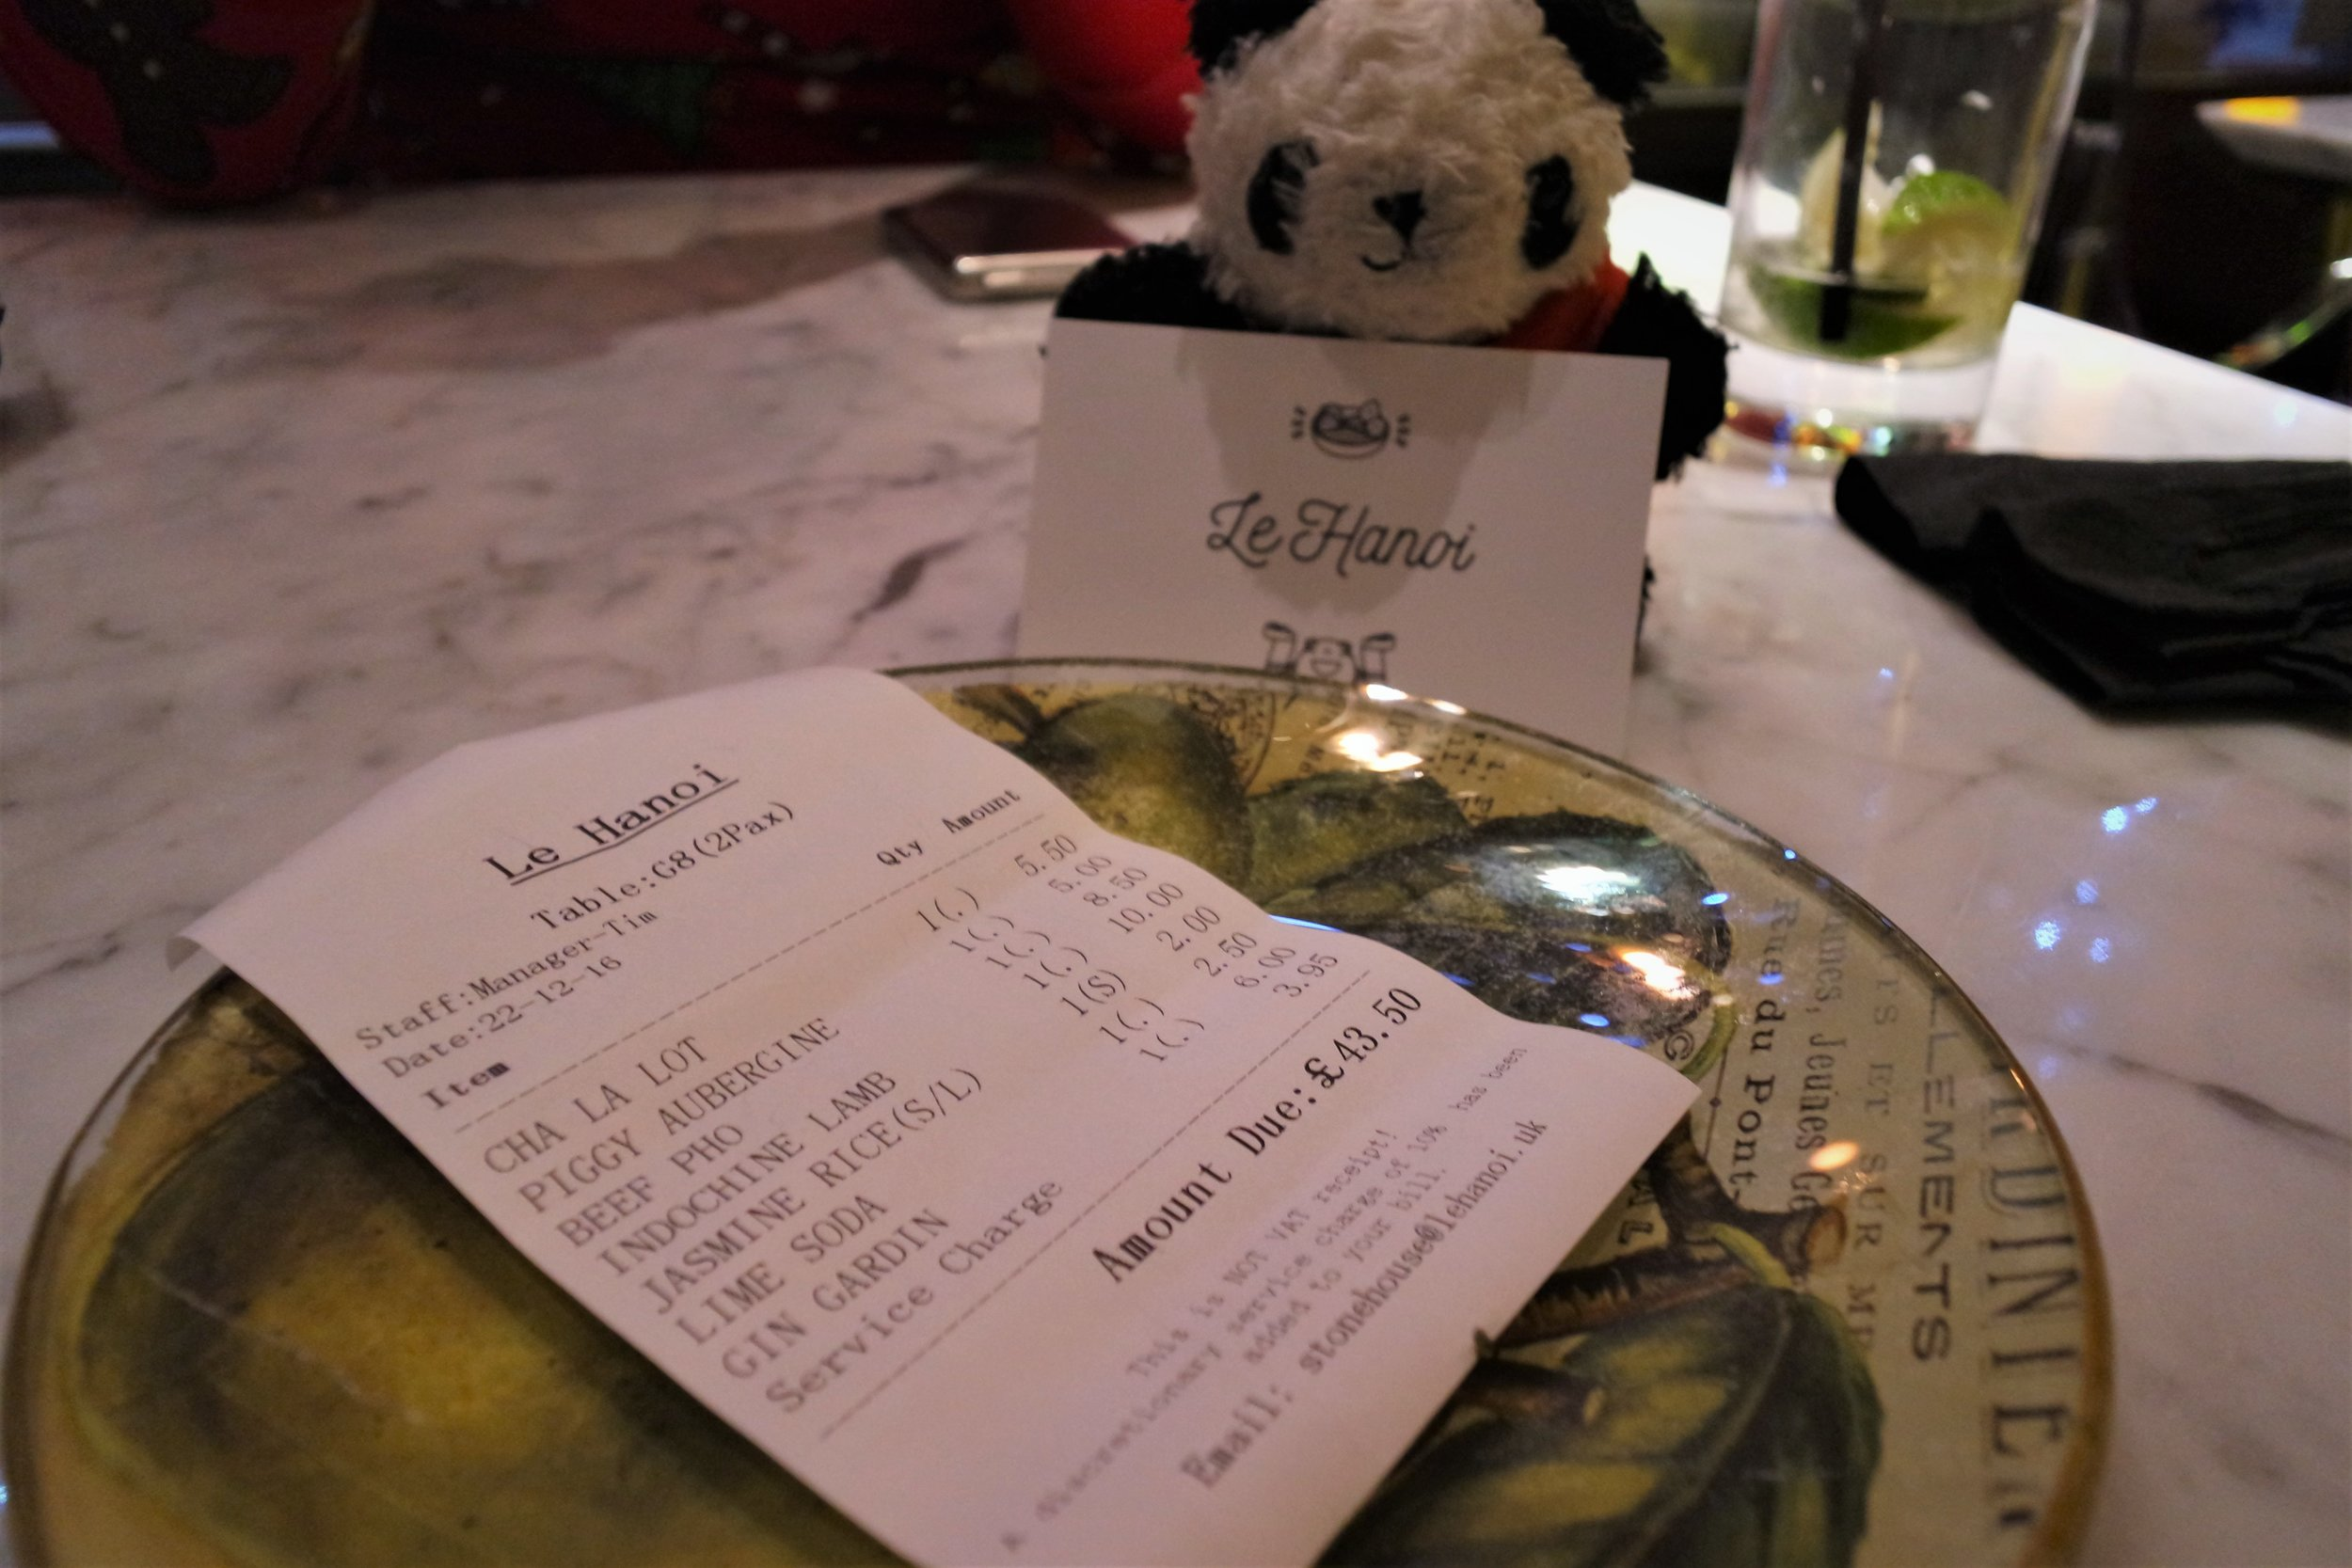 le hanoi meal price